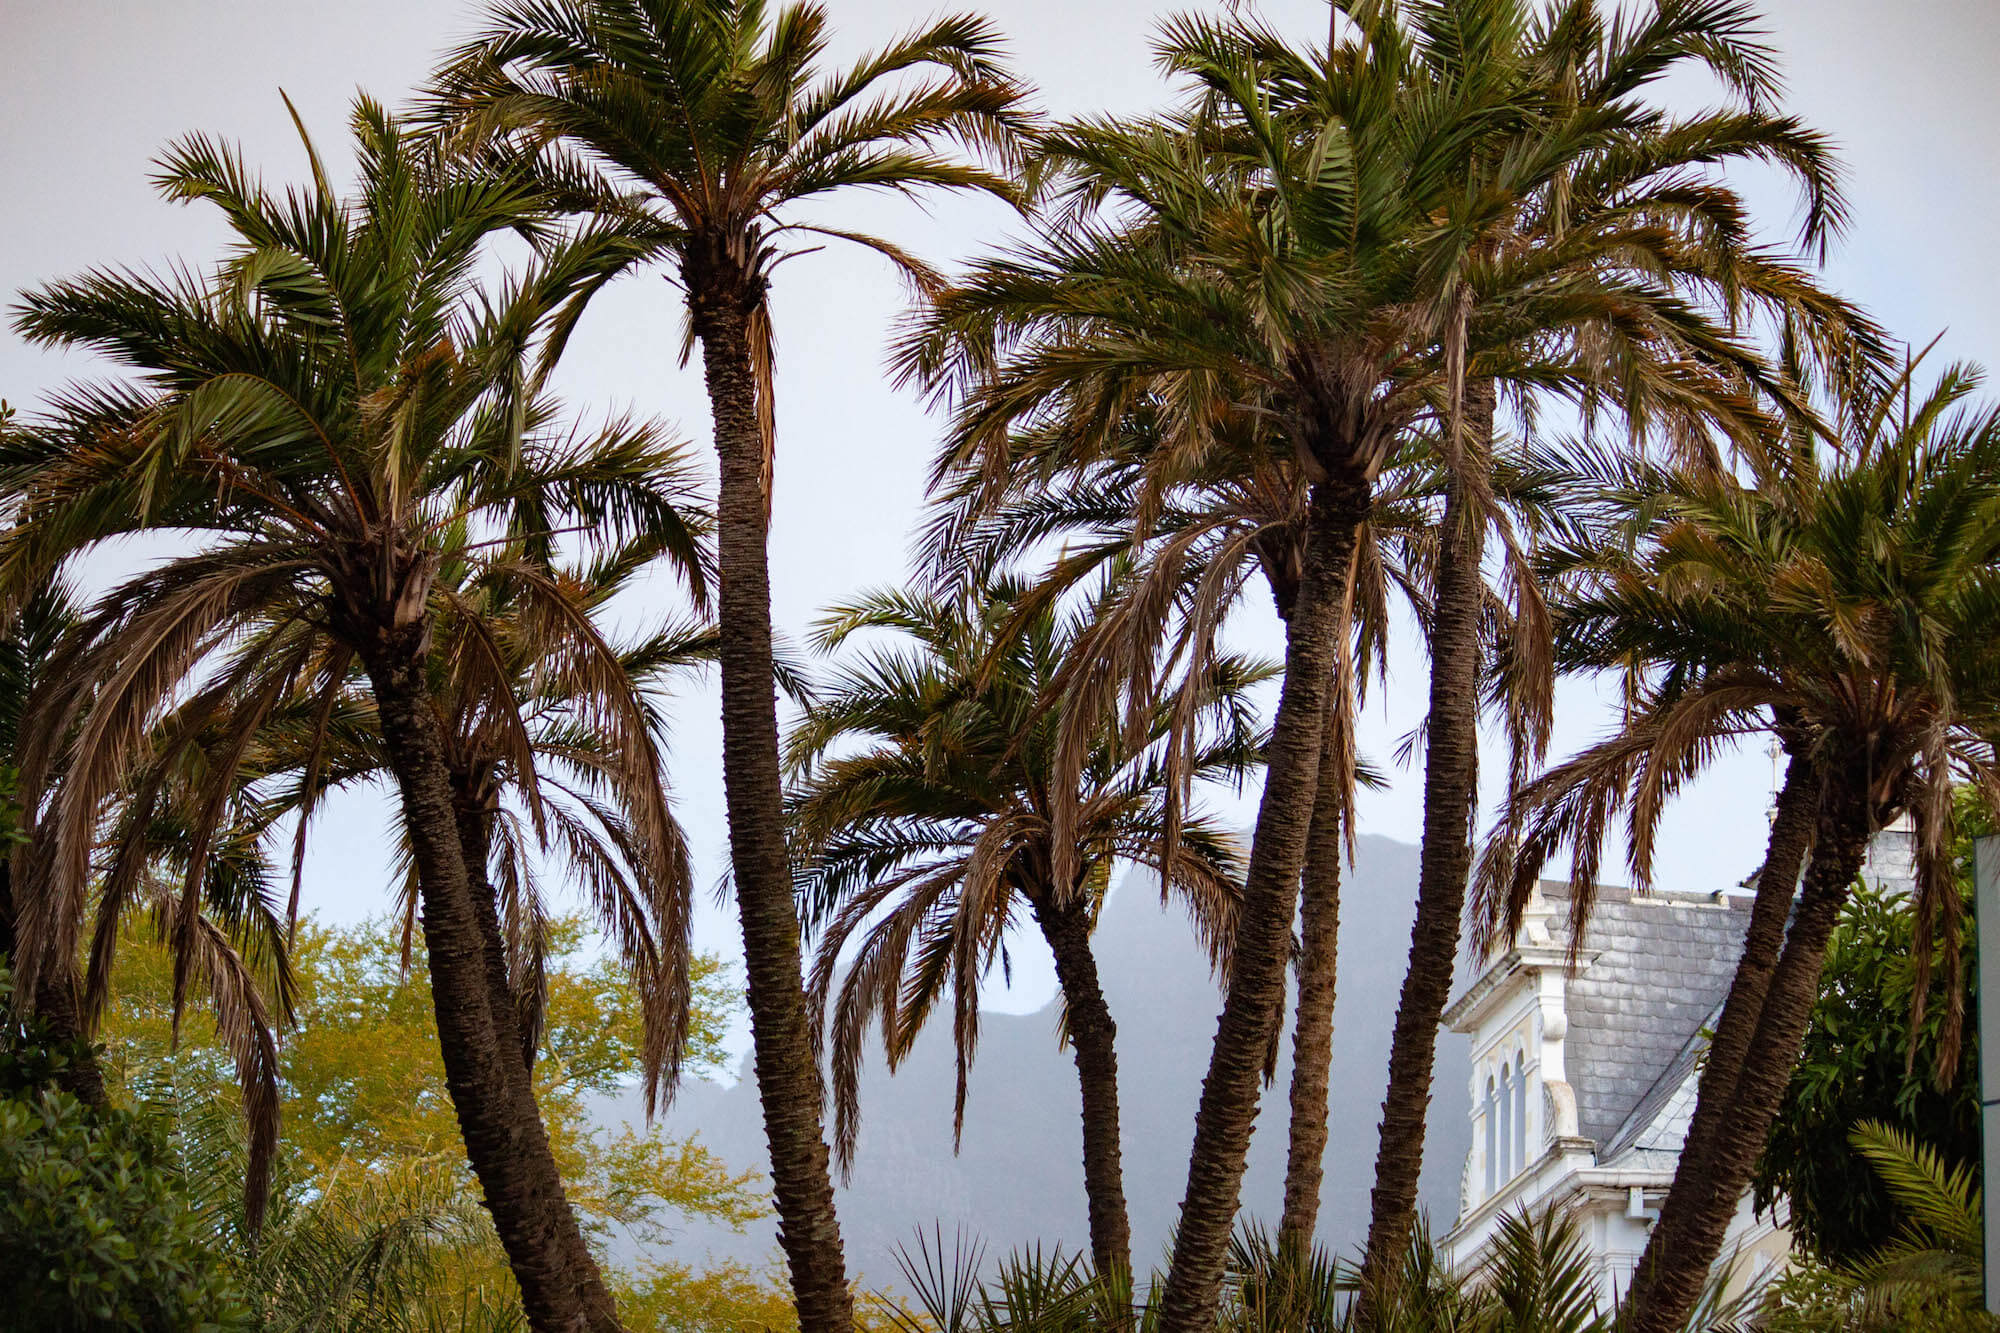 Palm trees of Company's Garden and rainy Table Mountain